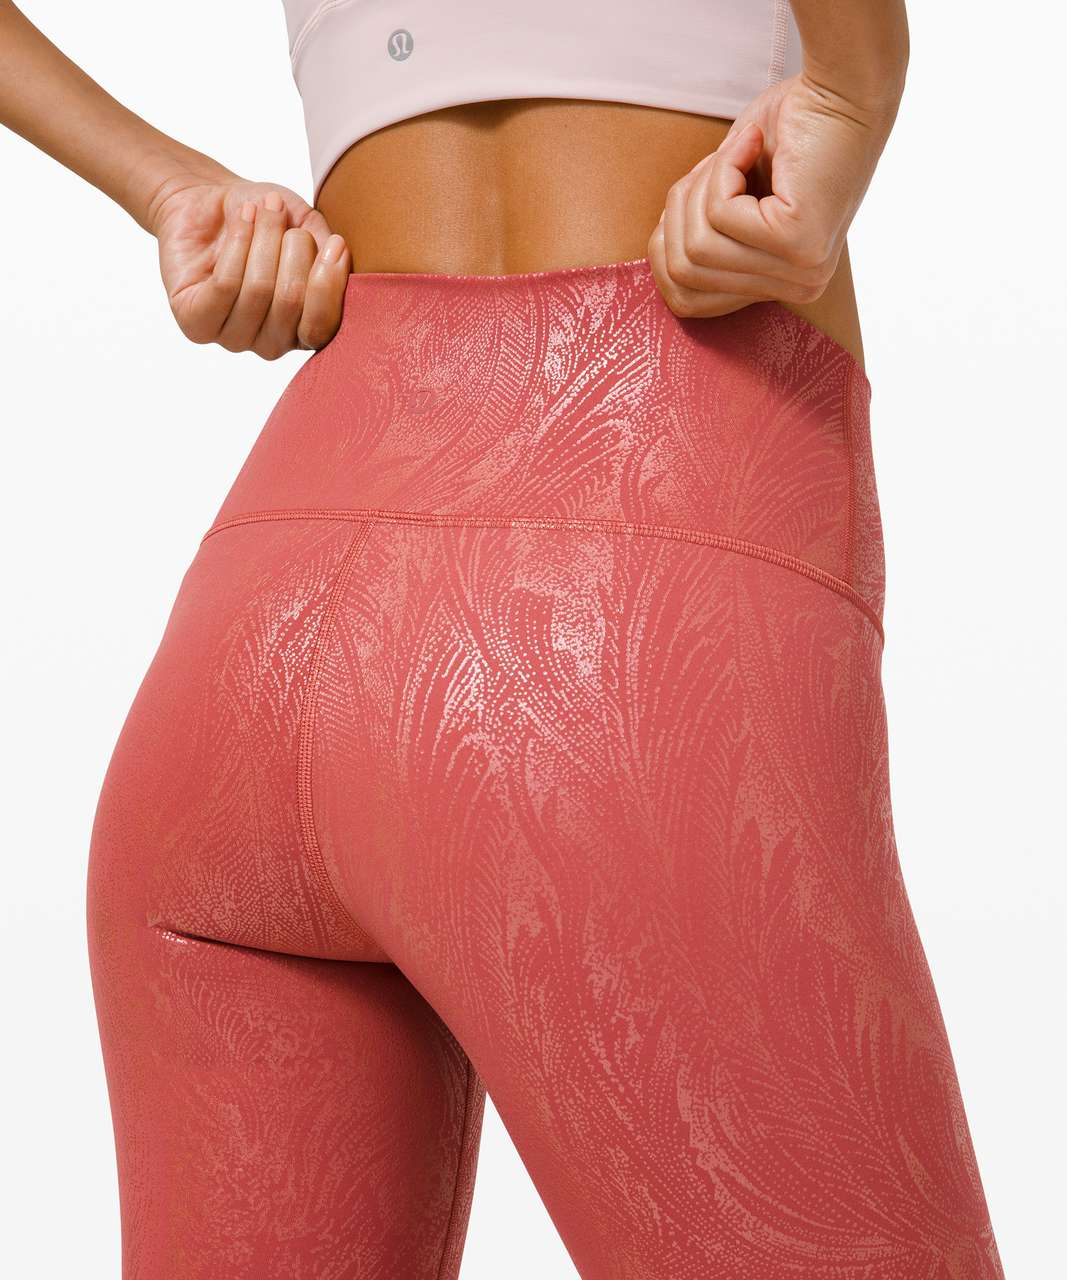 "Lululemon Wunder Under High-Rise Tight 28"" *Shine - Acclimatize Soft Cranberry Pink Foil"